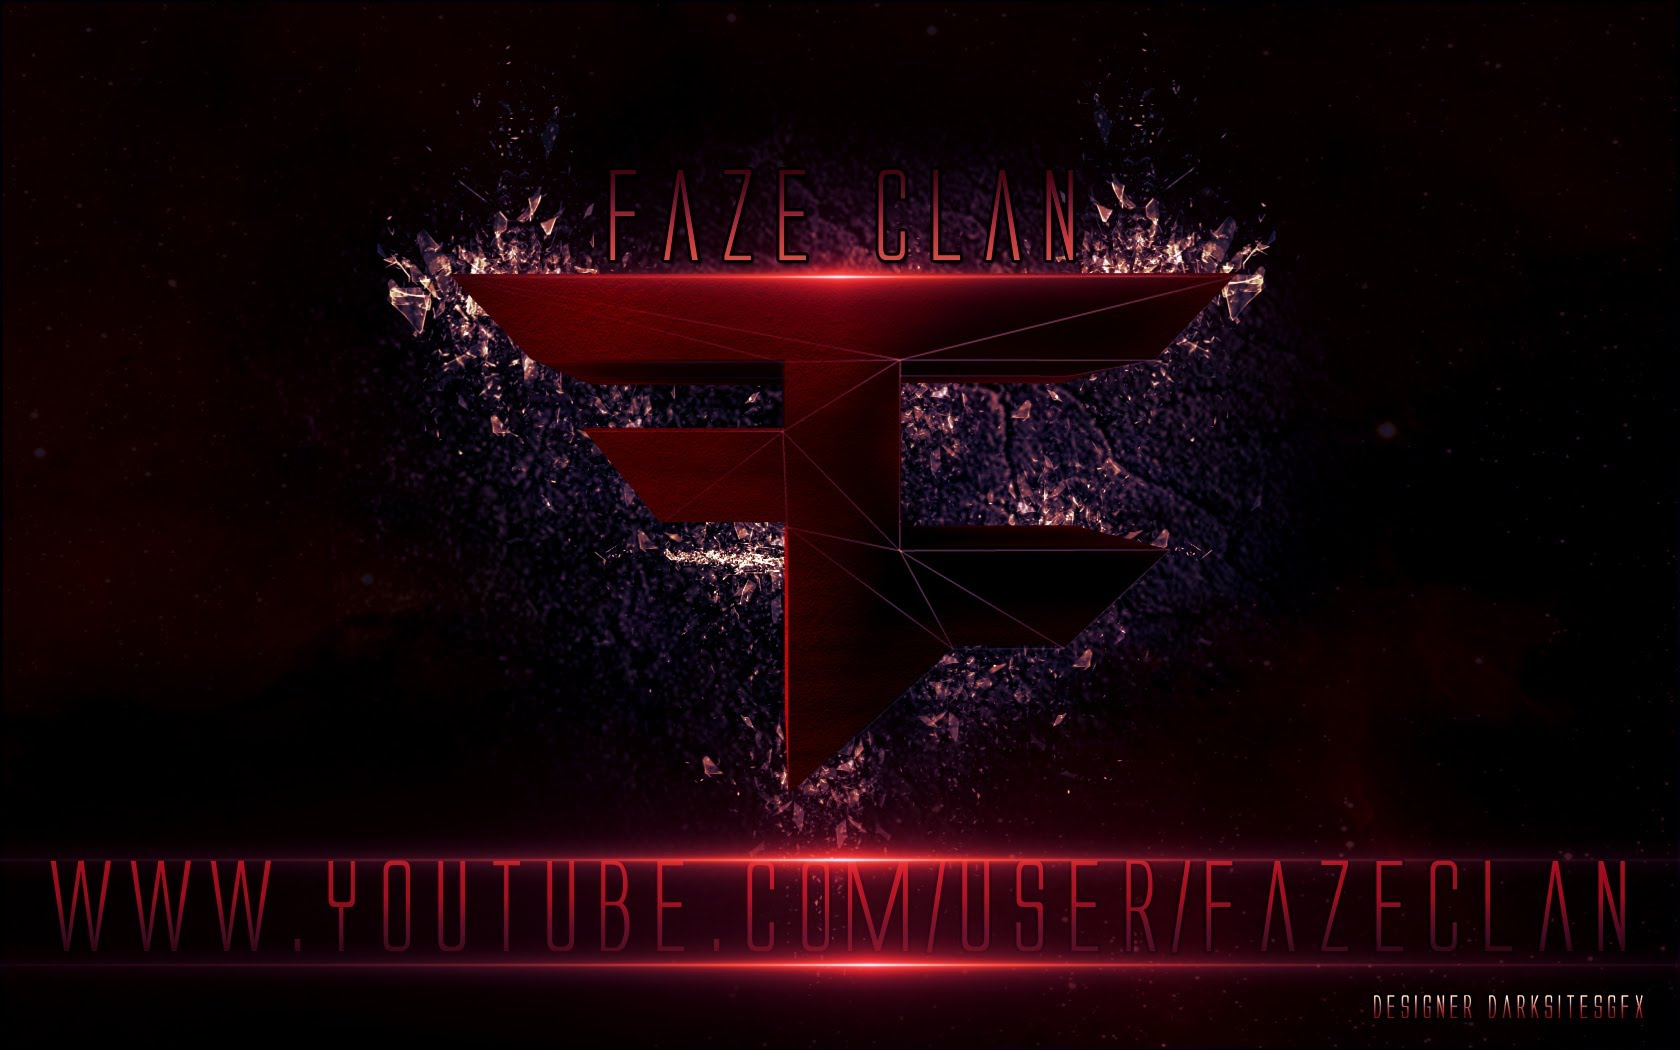 Free Download Faze Clan Phone Wallpaper Images 1680x1050 For